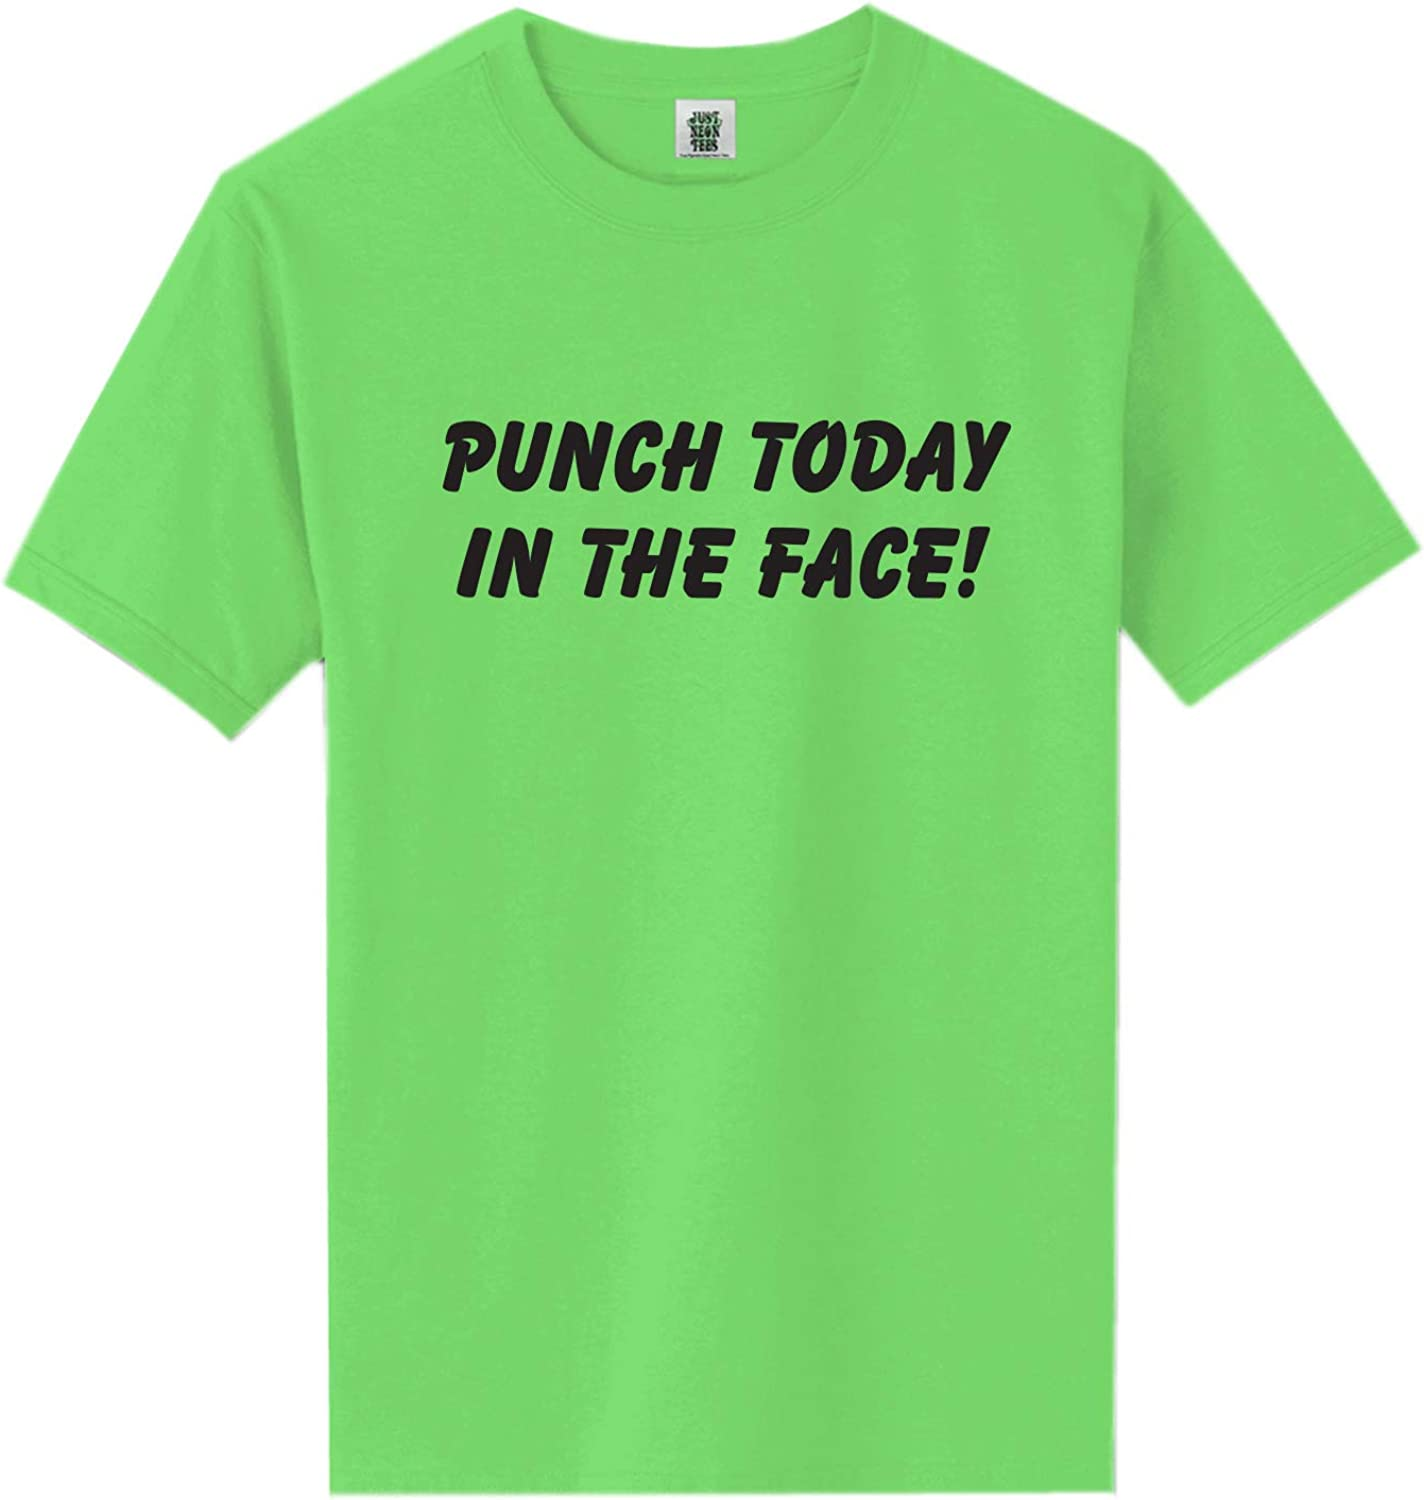 Punch Today in The Face! Short Sleeve Neon Tee